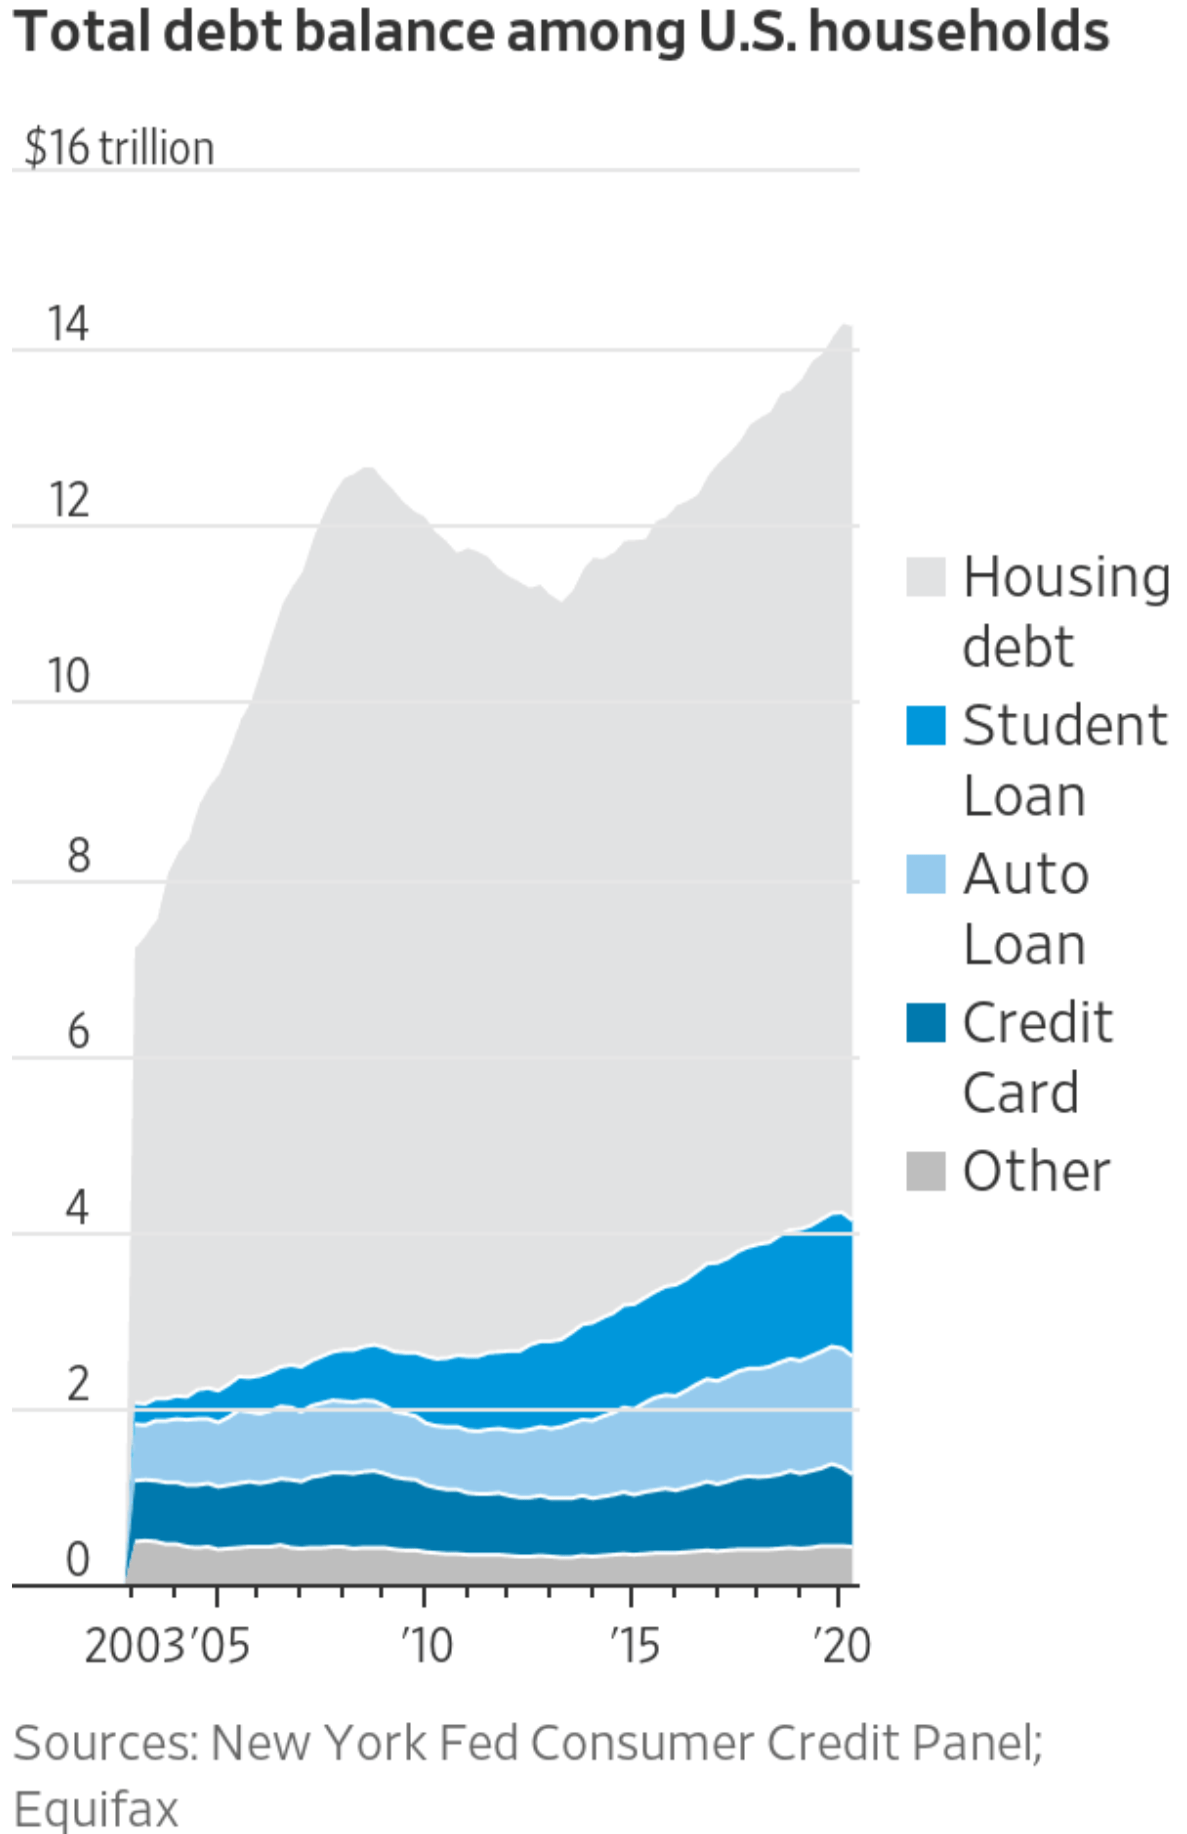 Total debt balances among U.S. households